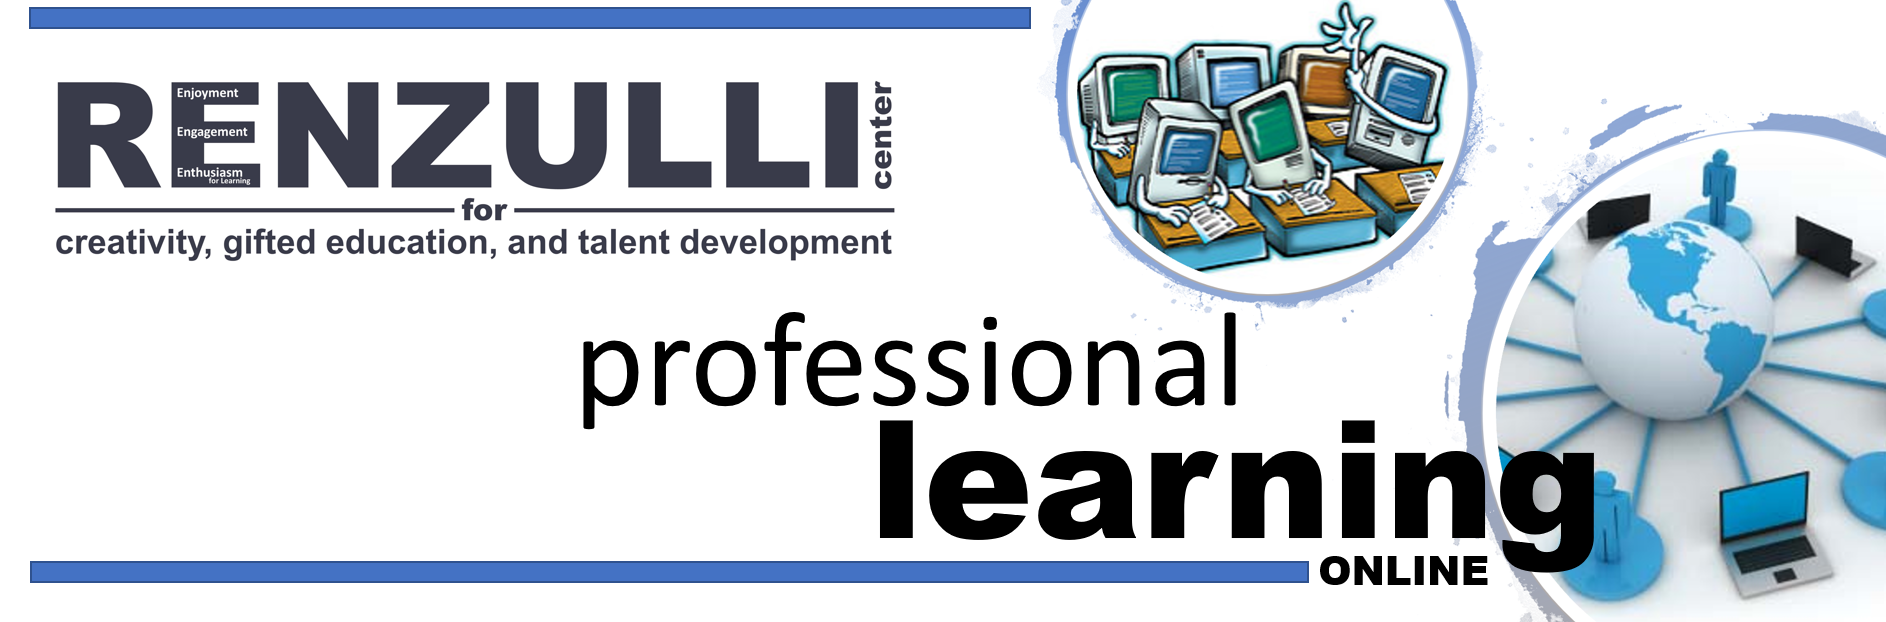 Graphic for Professional Learning Online